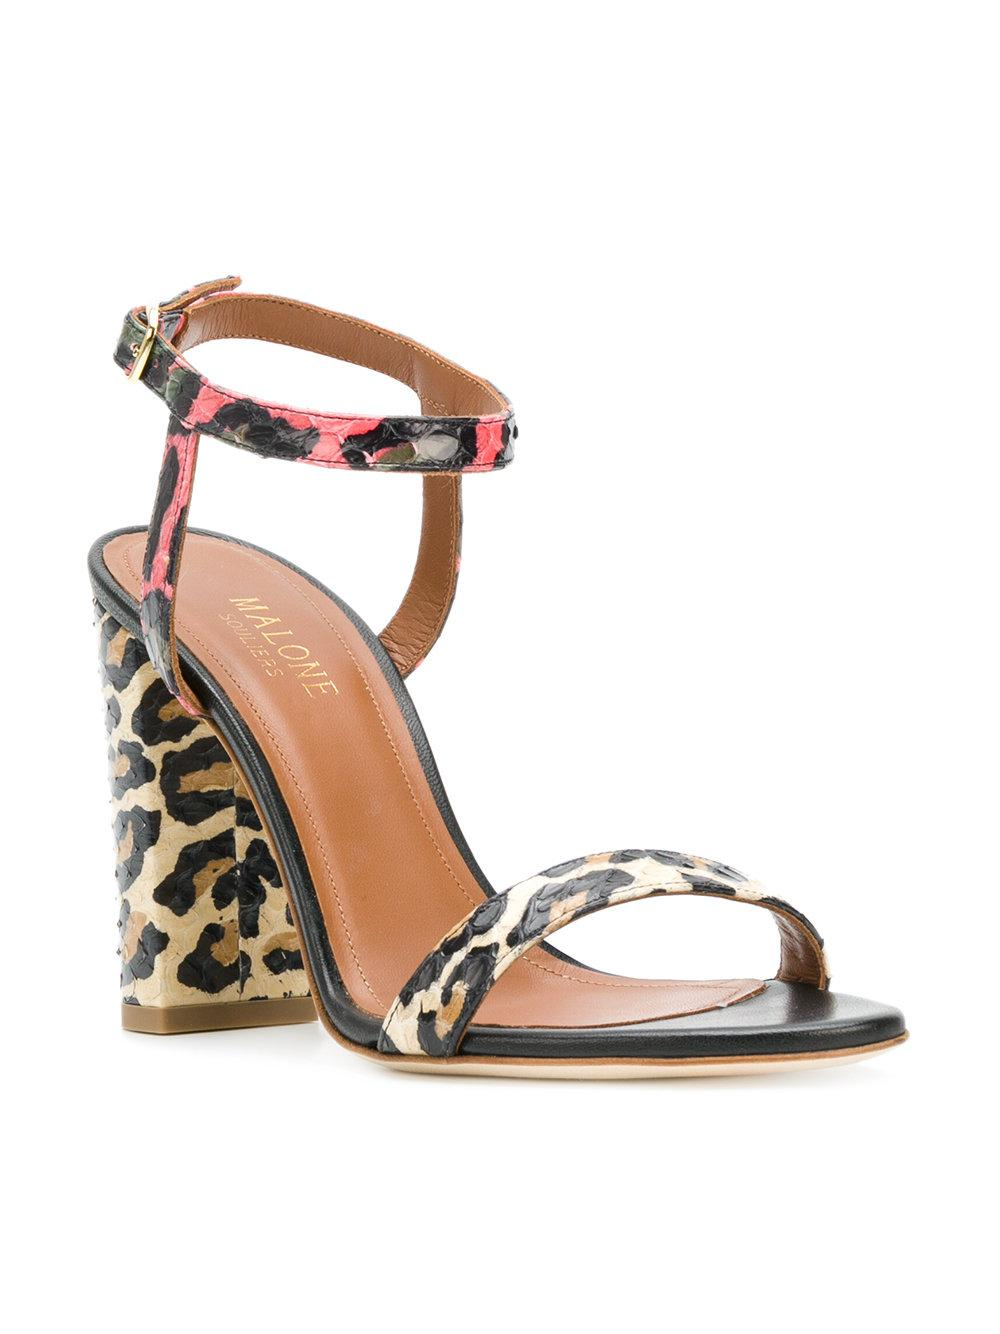 supply cheap online Malone Souliers animal print sandals discount perfect hTPcSFvHGy